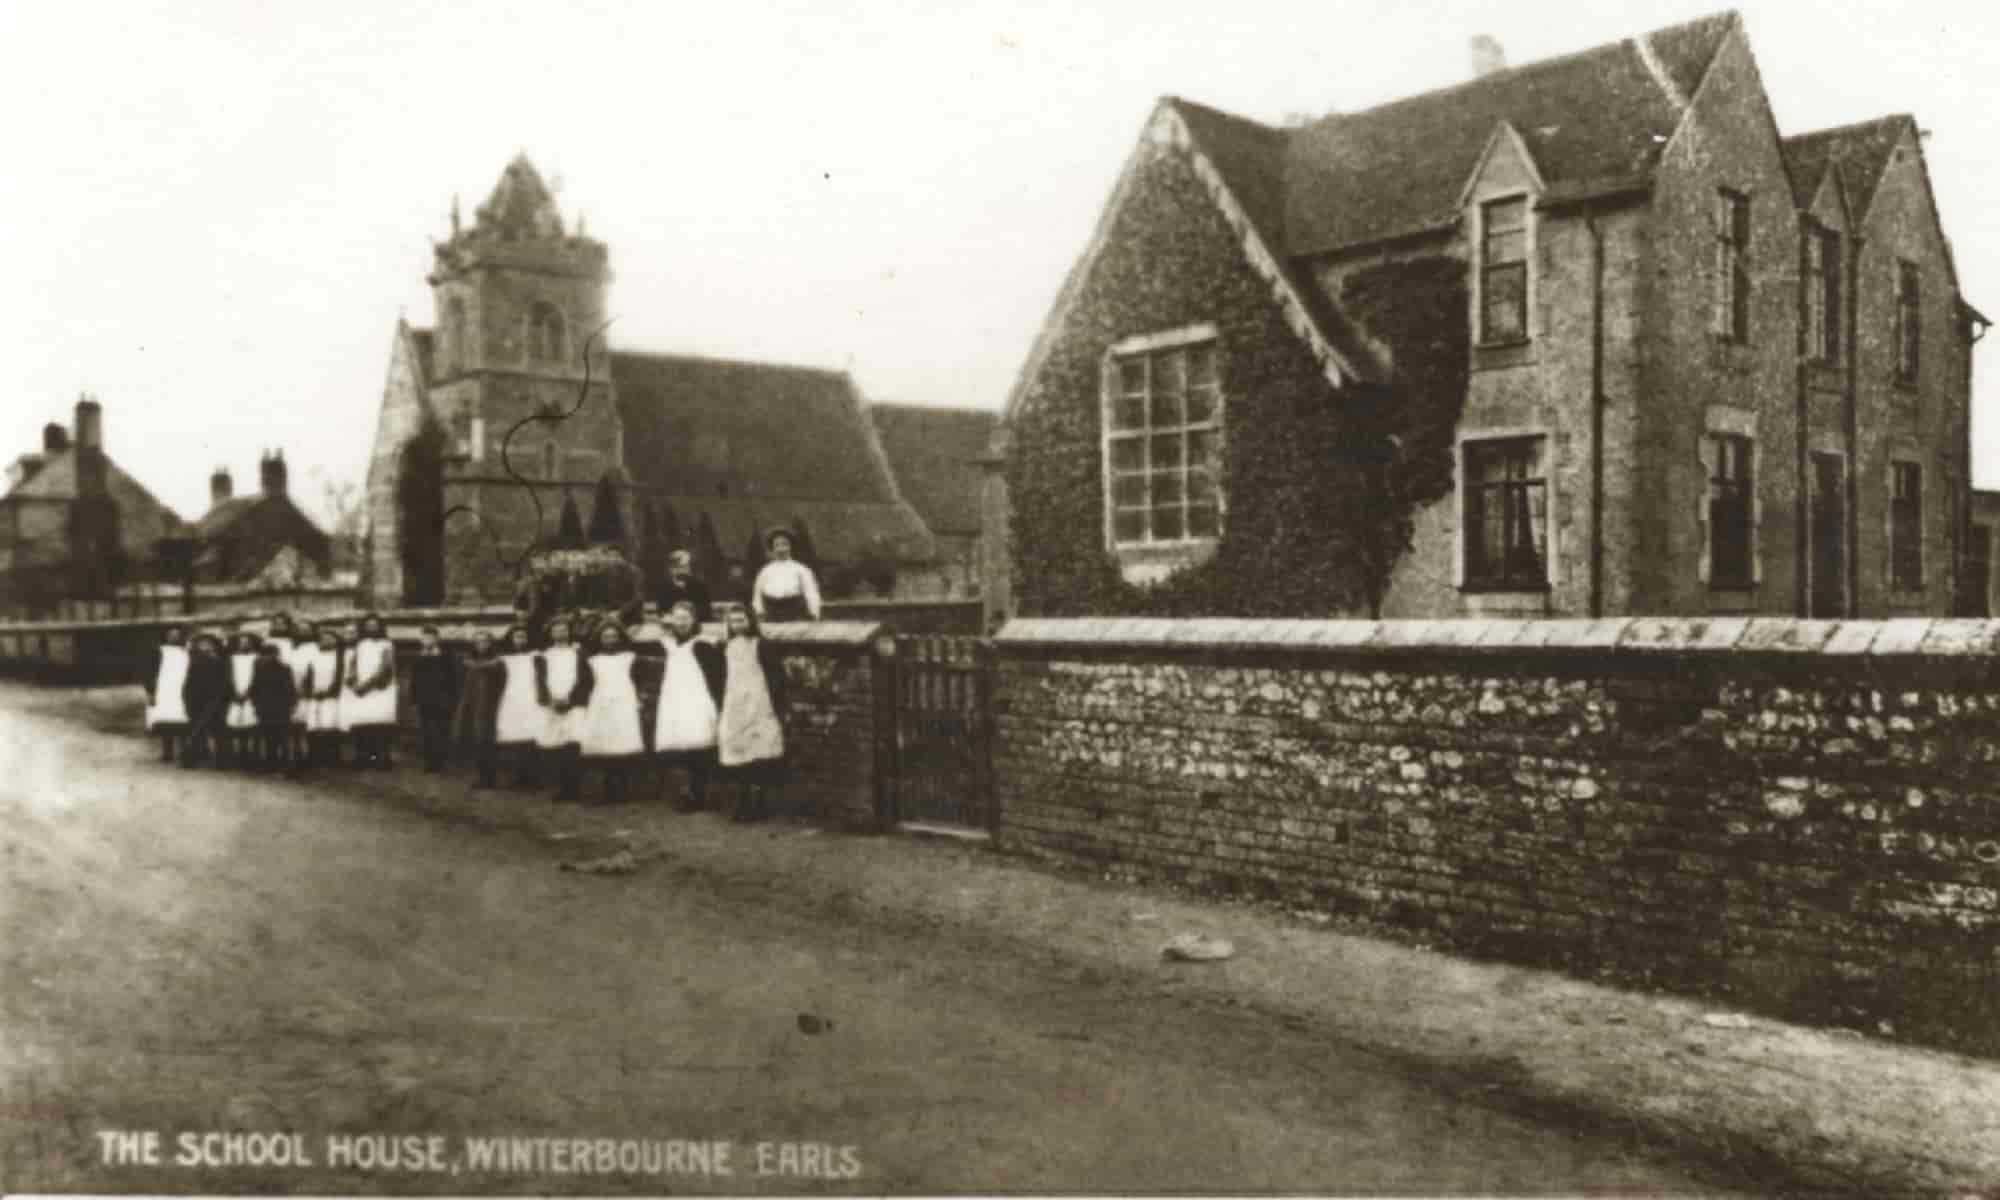 Winterbourne Earls